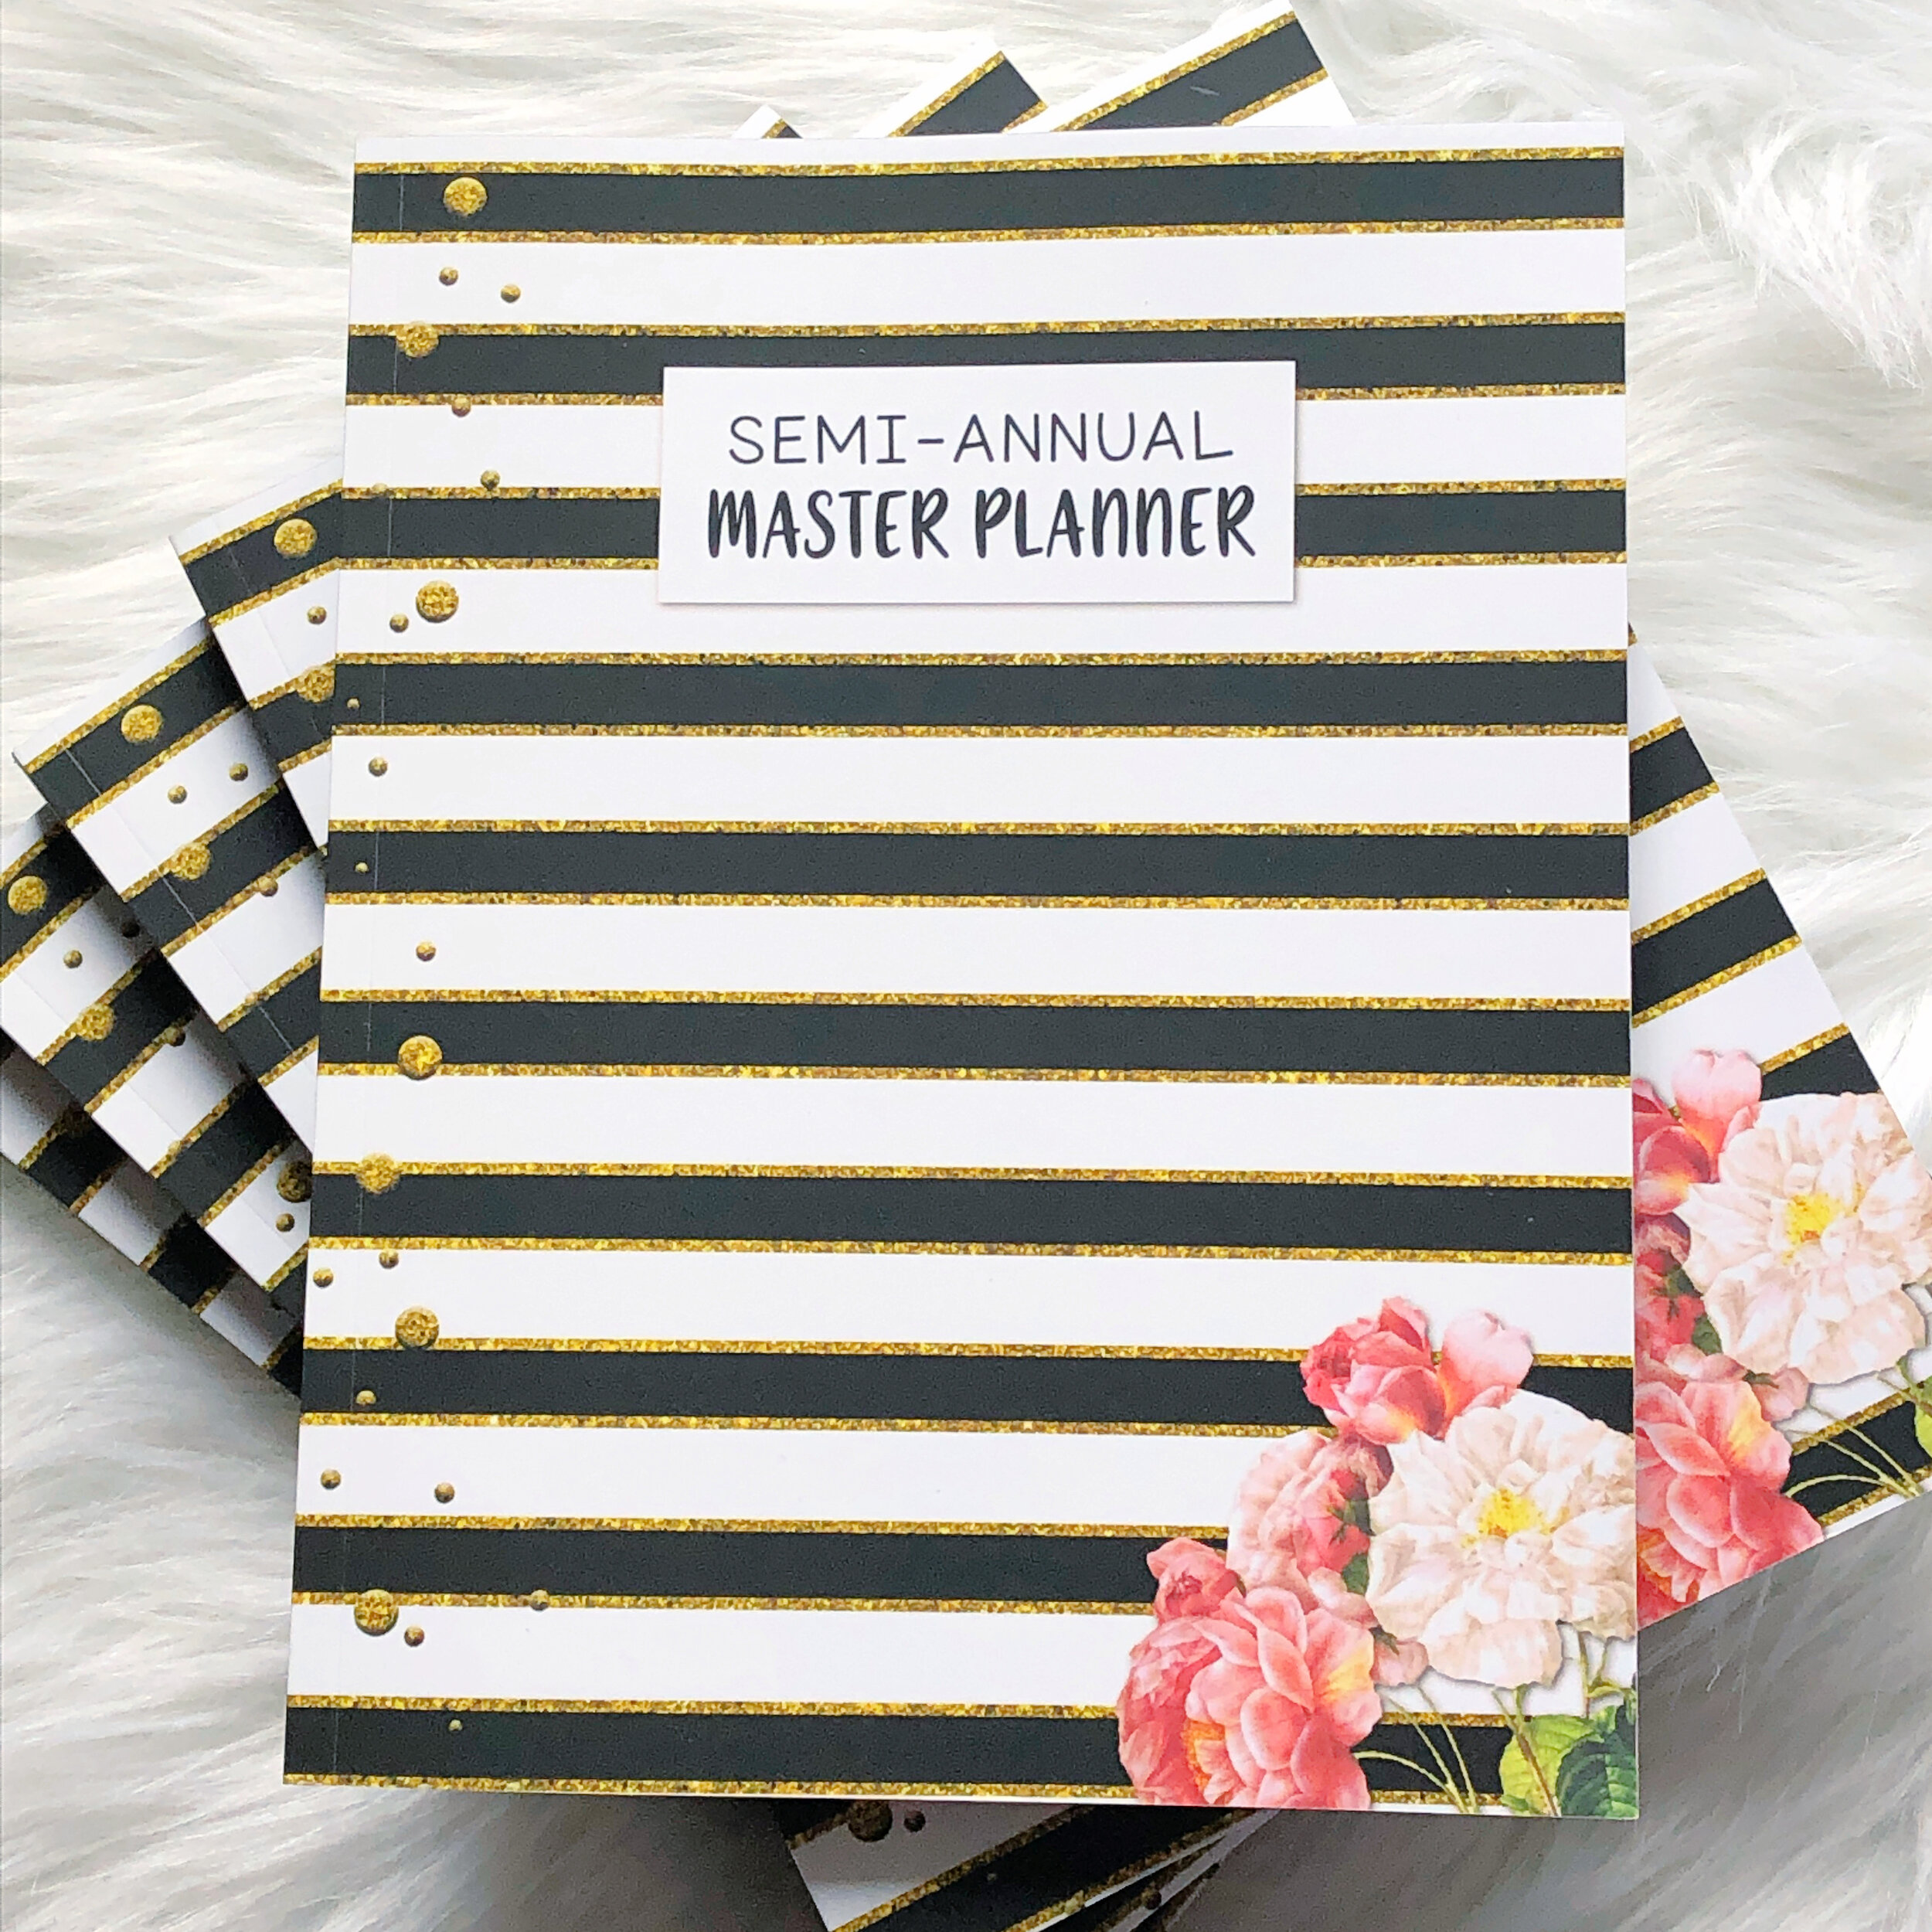 Semi-Annual Planner - Your go-to Personal Planning System that will help you manage your time and complete your tasks.